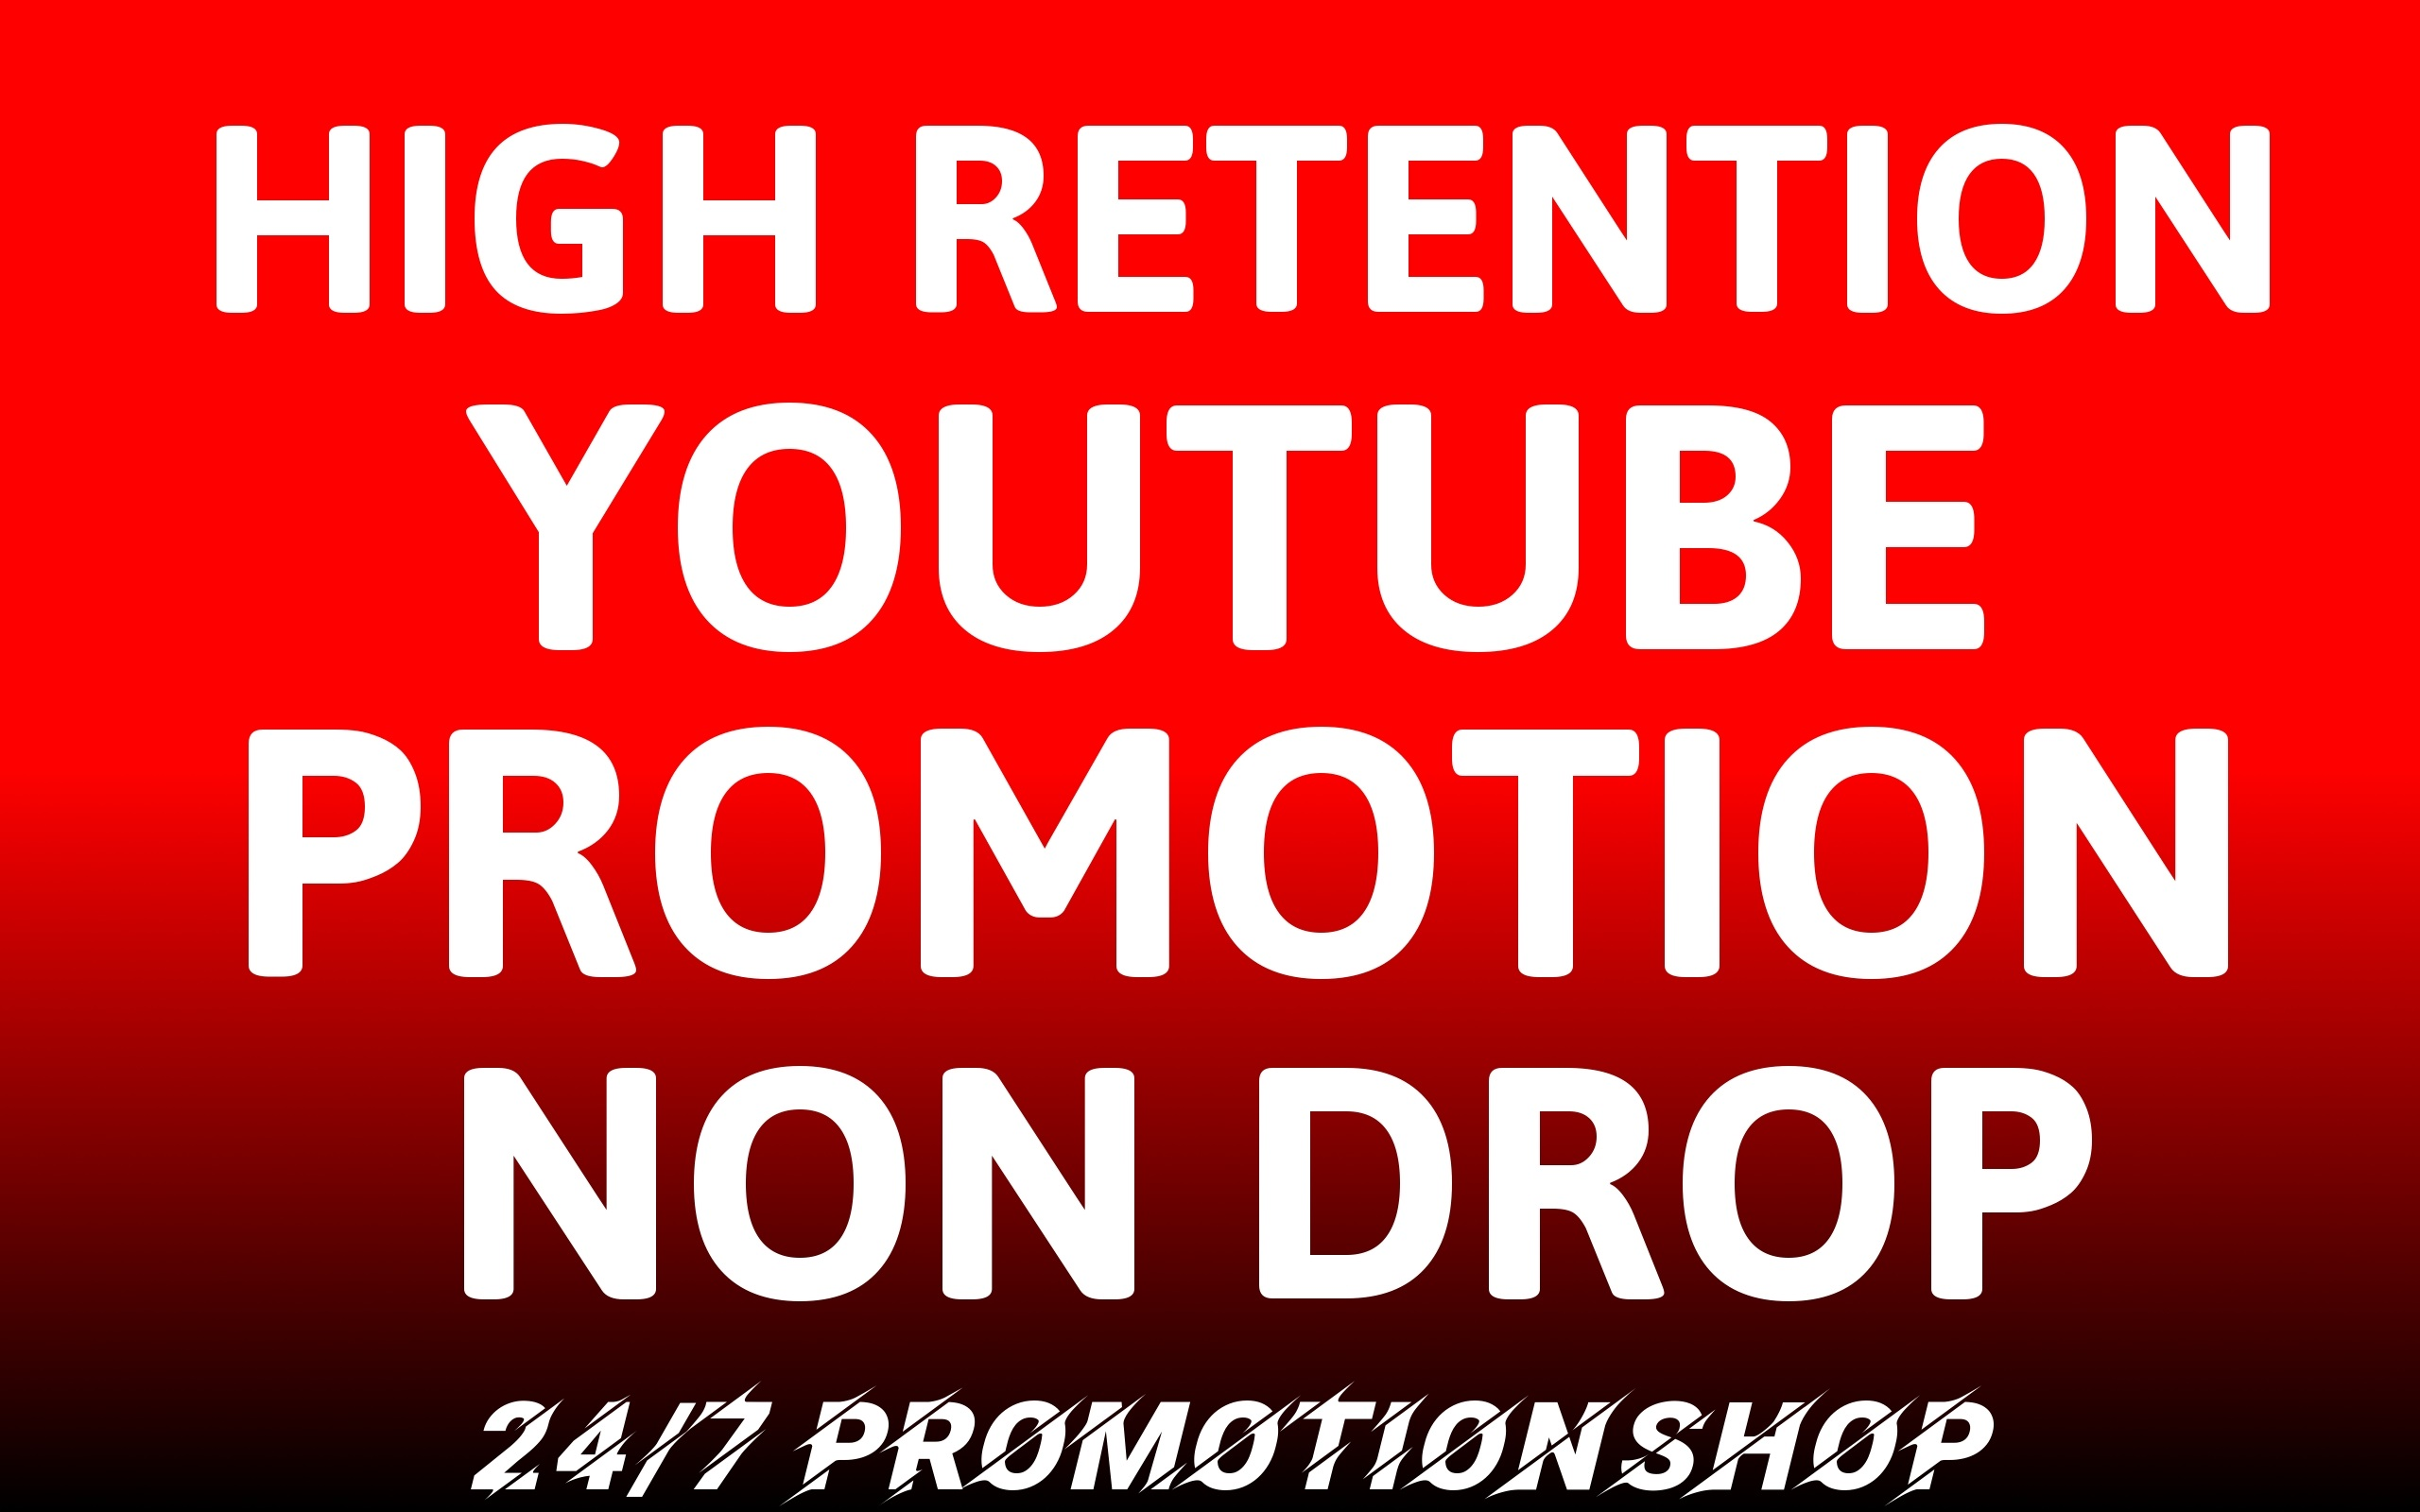 YouTube VIDEO Promotion NON DROP With Lifetime Guarantee